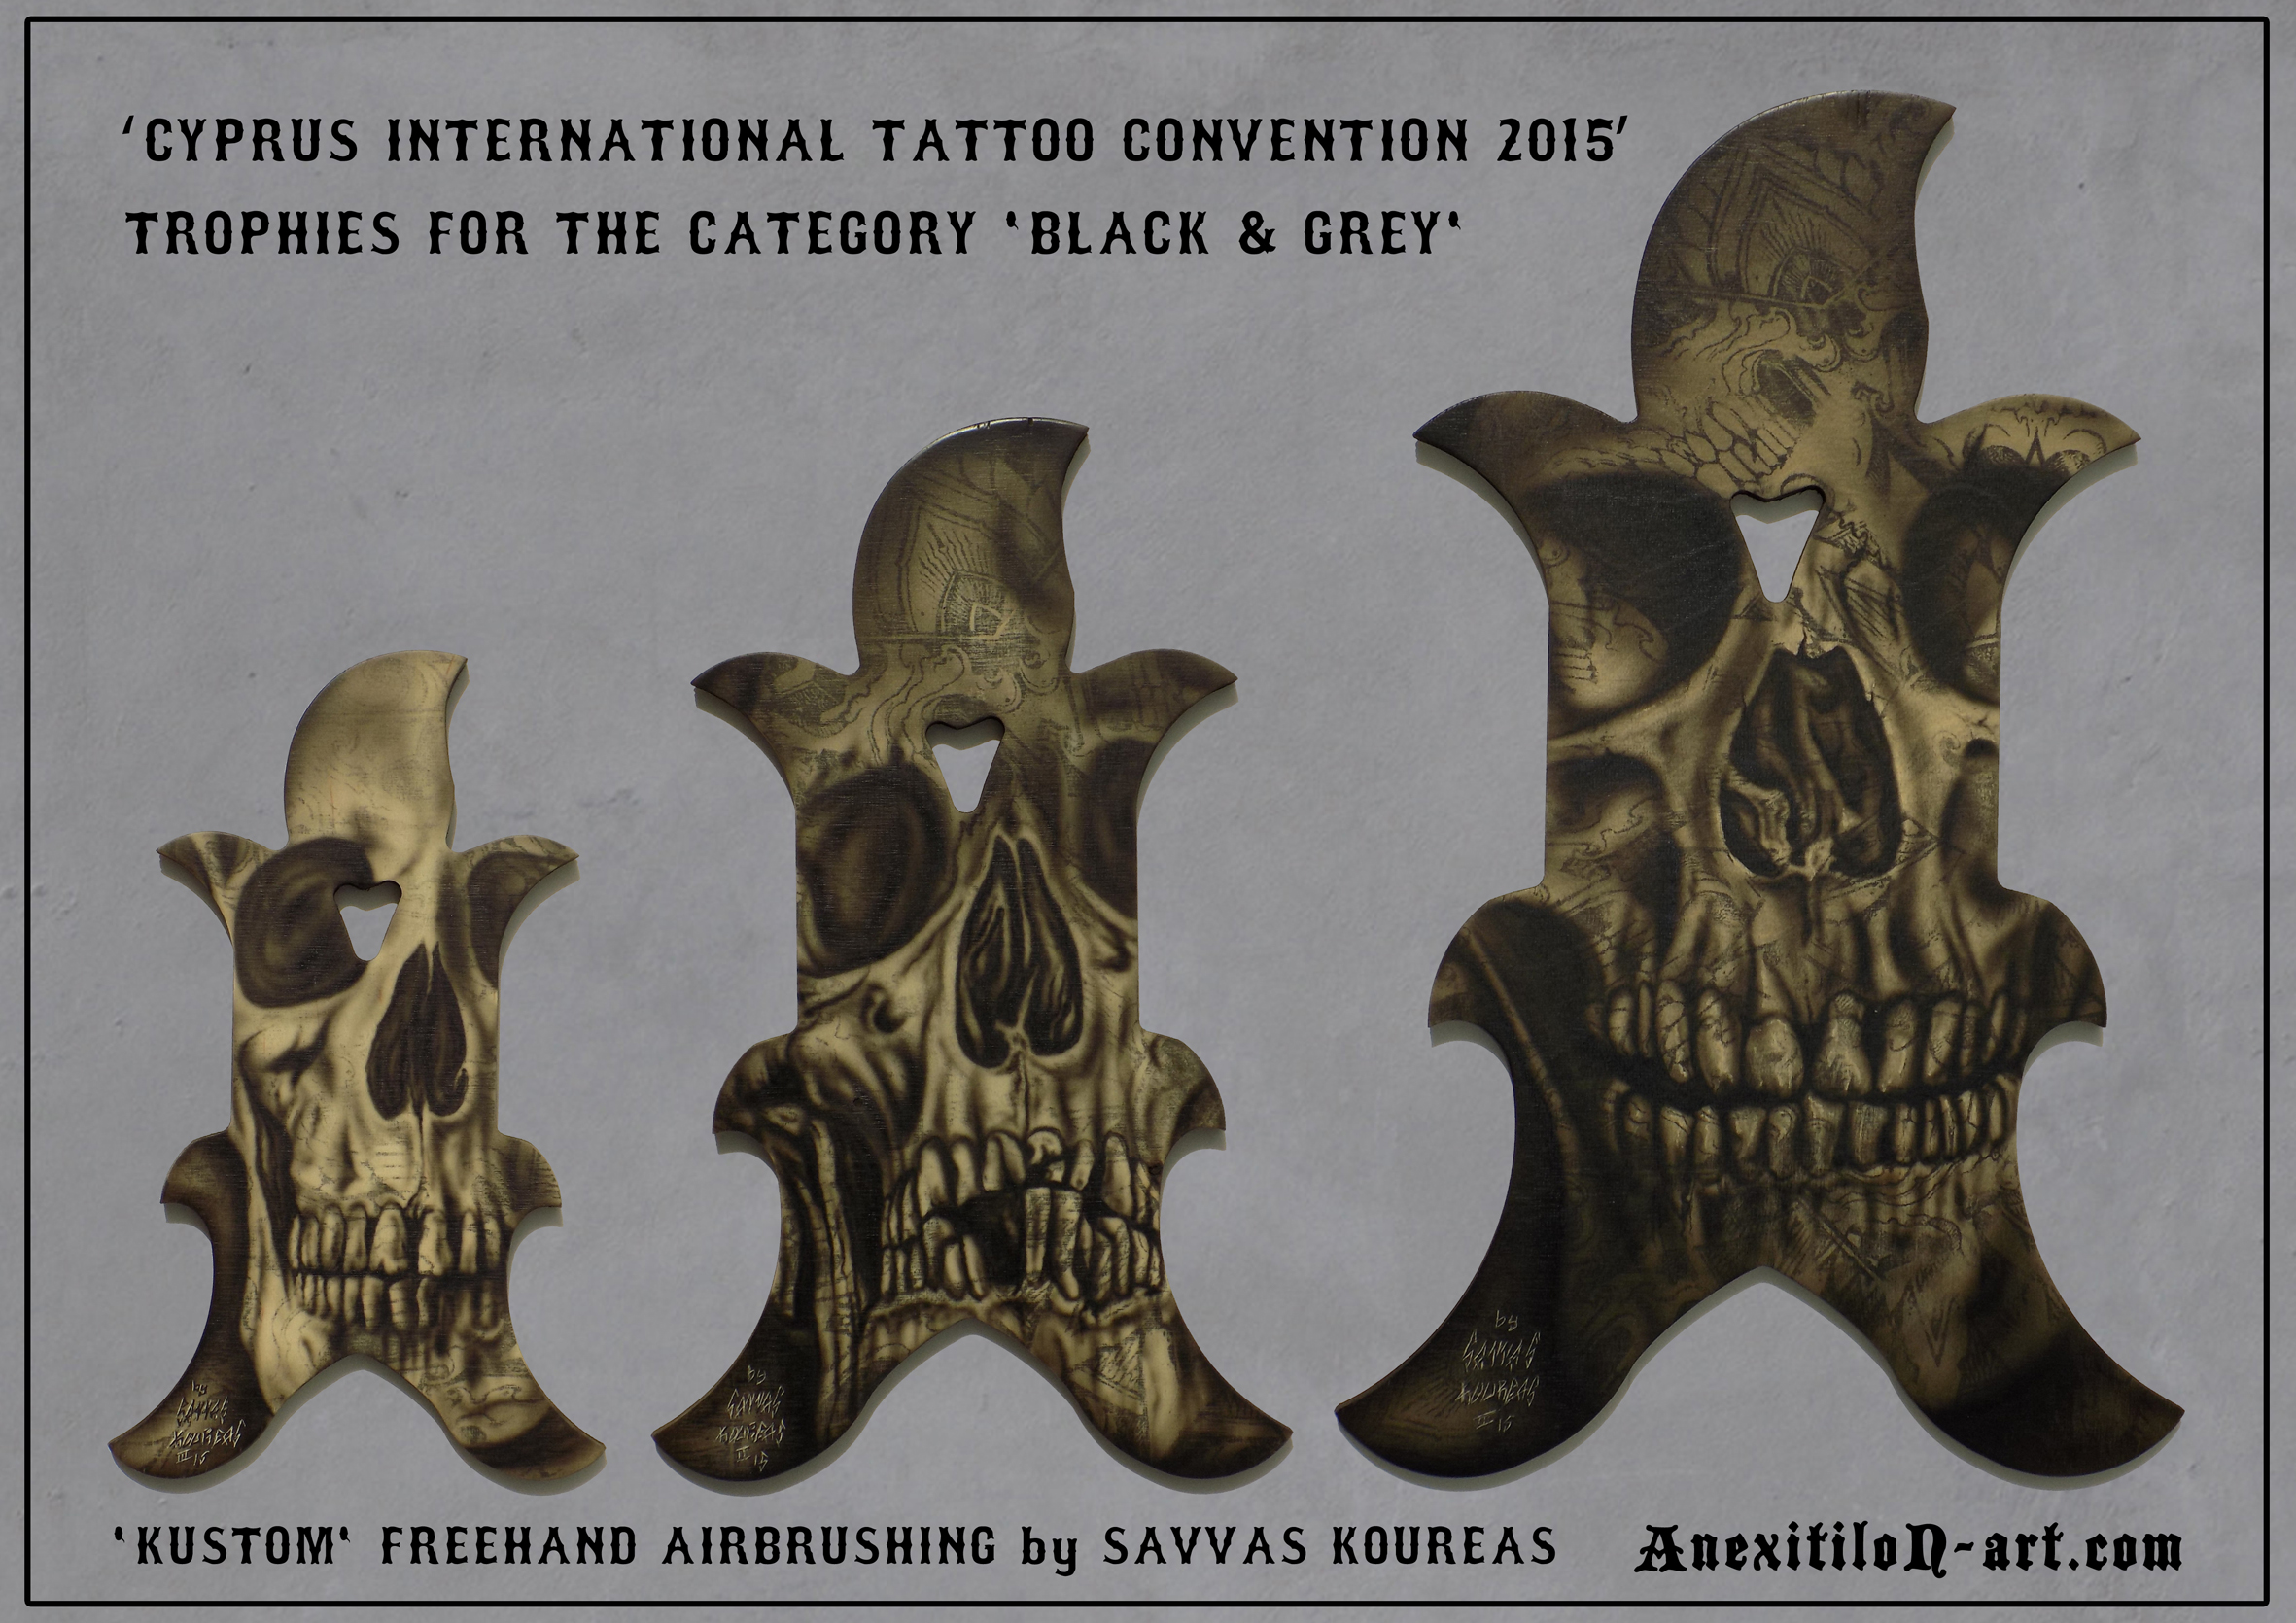 TATTOO CONVENTION TROPHIES by Savvas Koureas